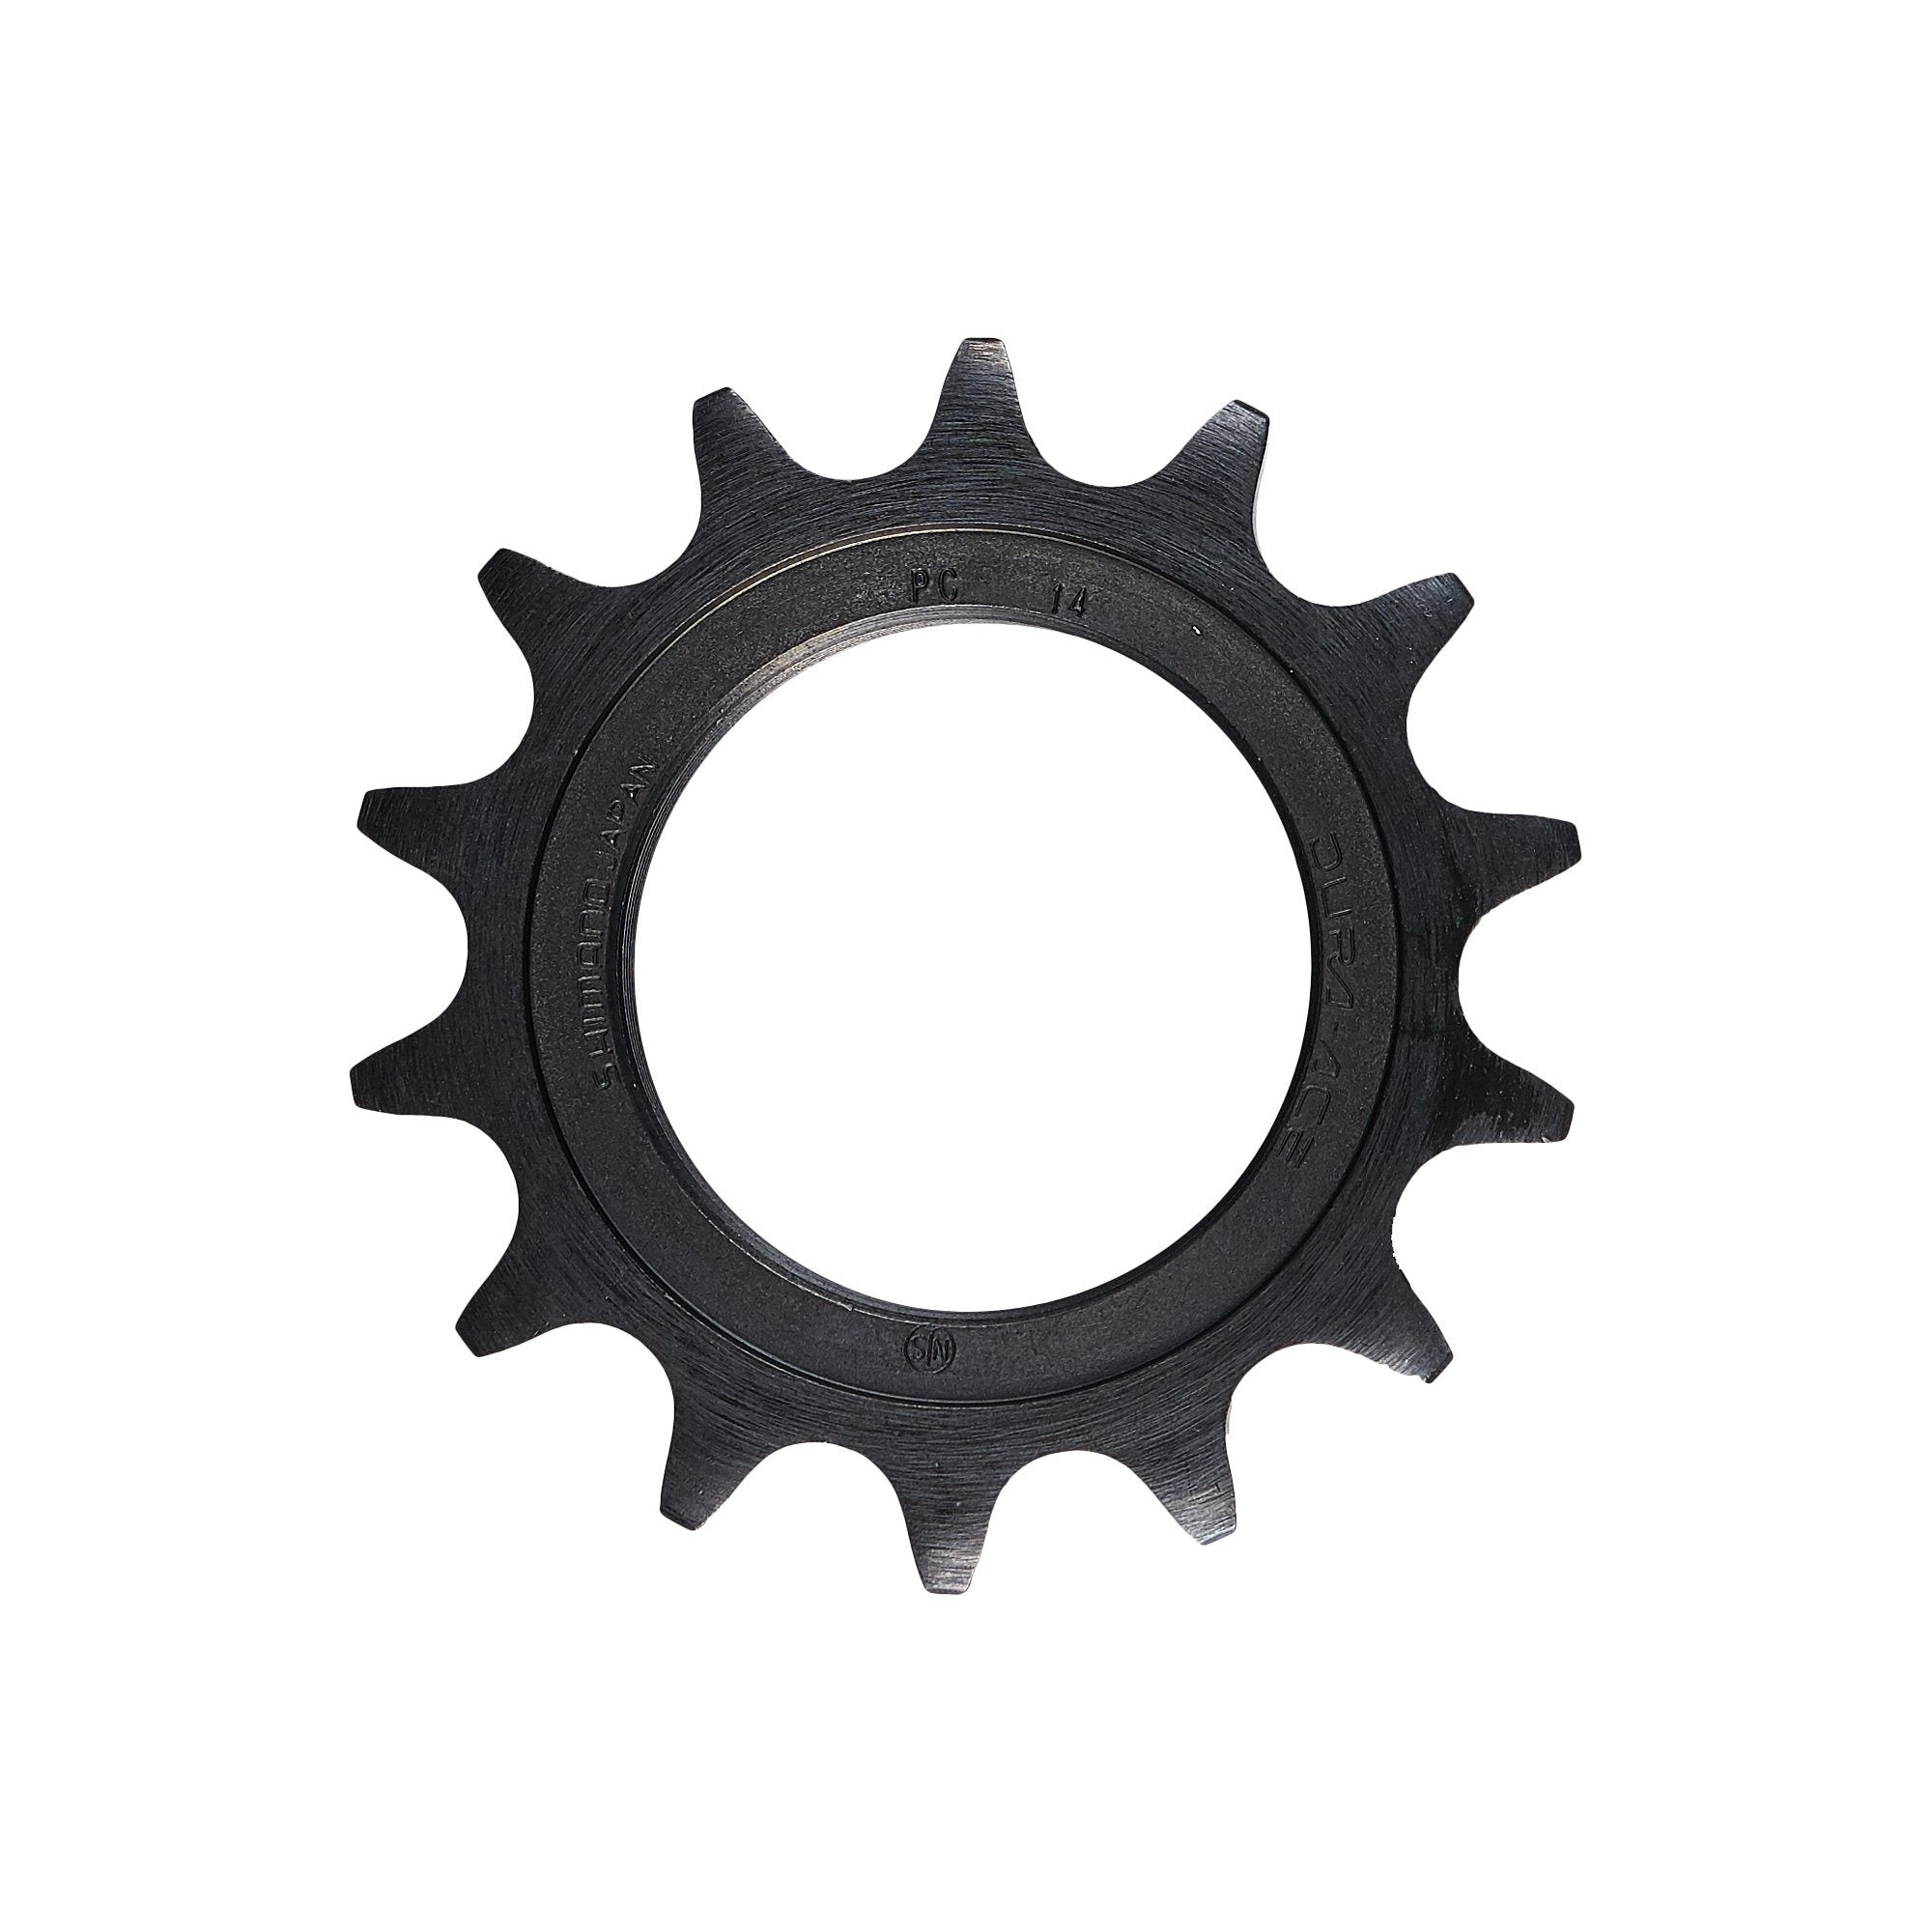 Cycling New Shimano Dura-ace Track Sprockets Non-Ironing